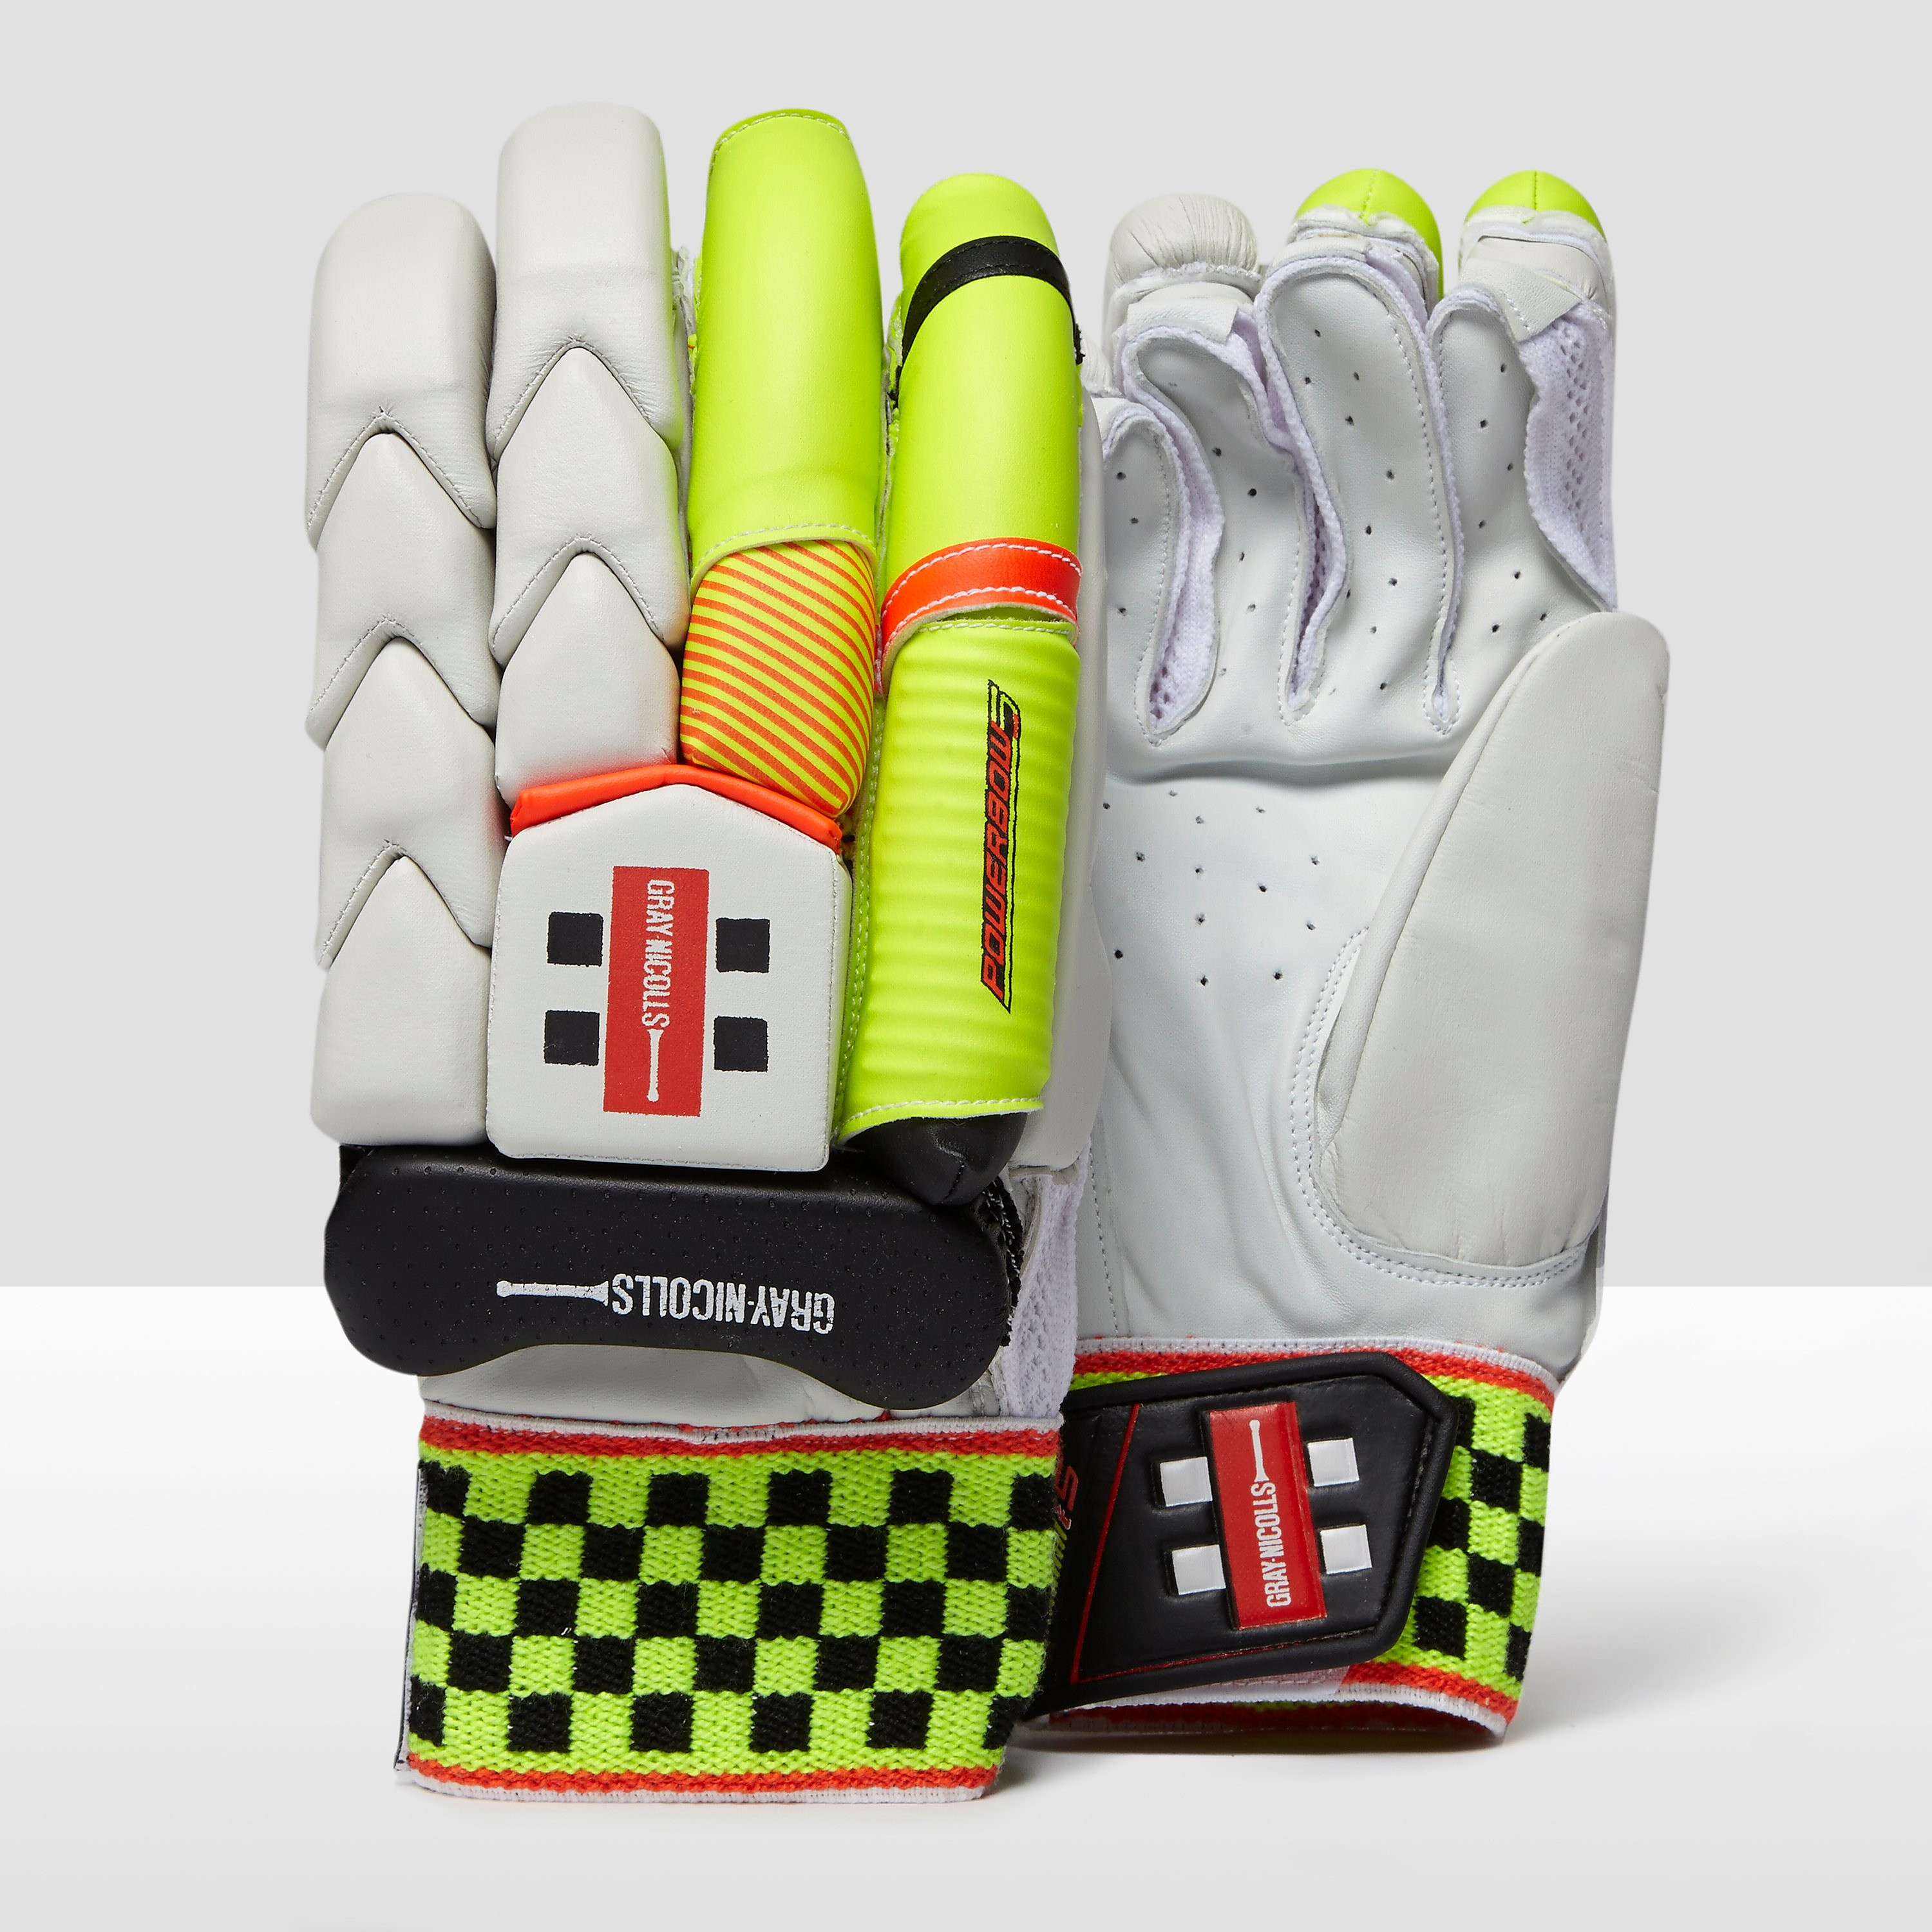 Gray Nicolls POWERBOW 5 1250 Batting Gloves